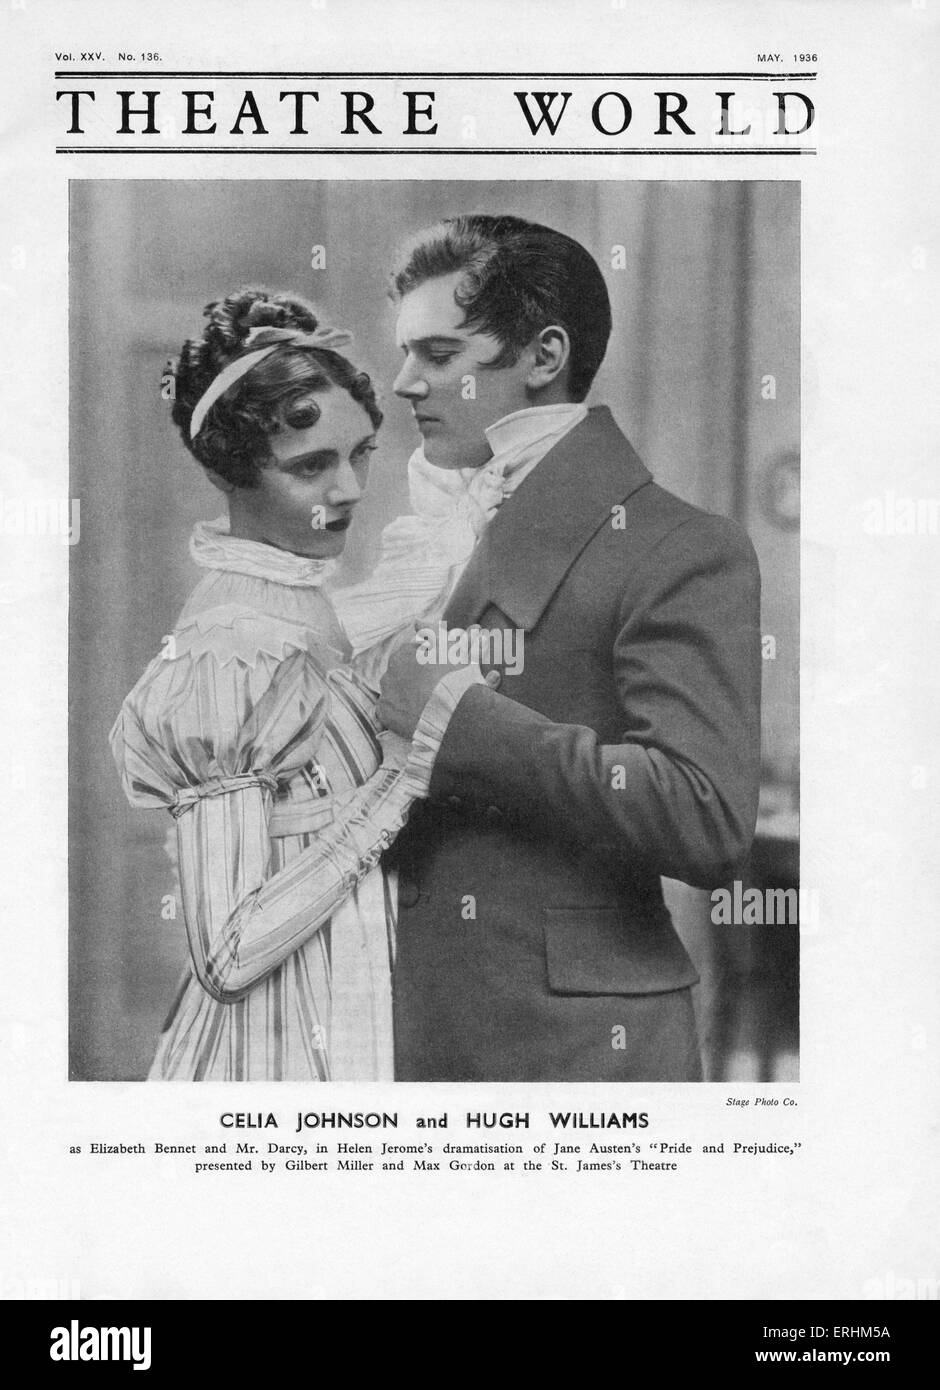 Celia Johnson as 'Elizabeth Bennet' & Hugh Williams as 'Mr. Darcy' in Helen Jerome 's dramatisation - Stock Image